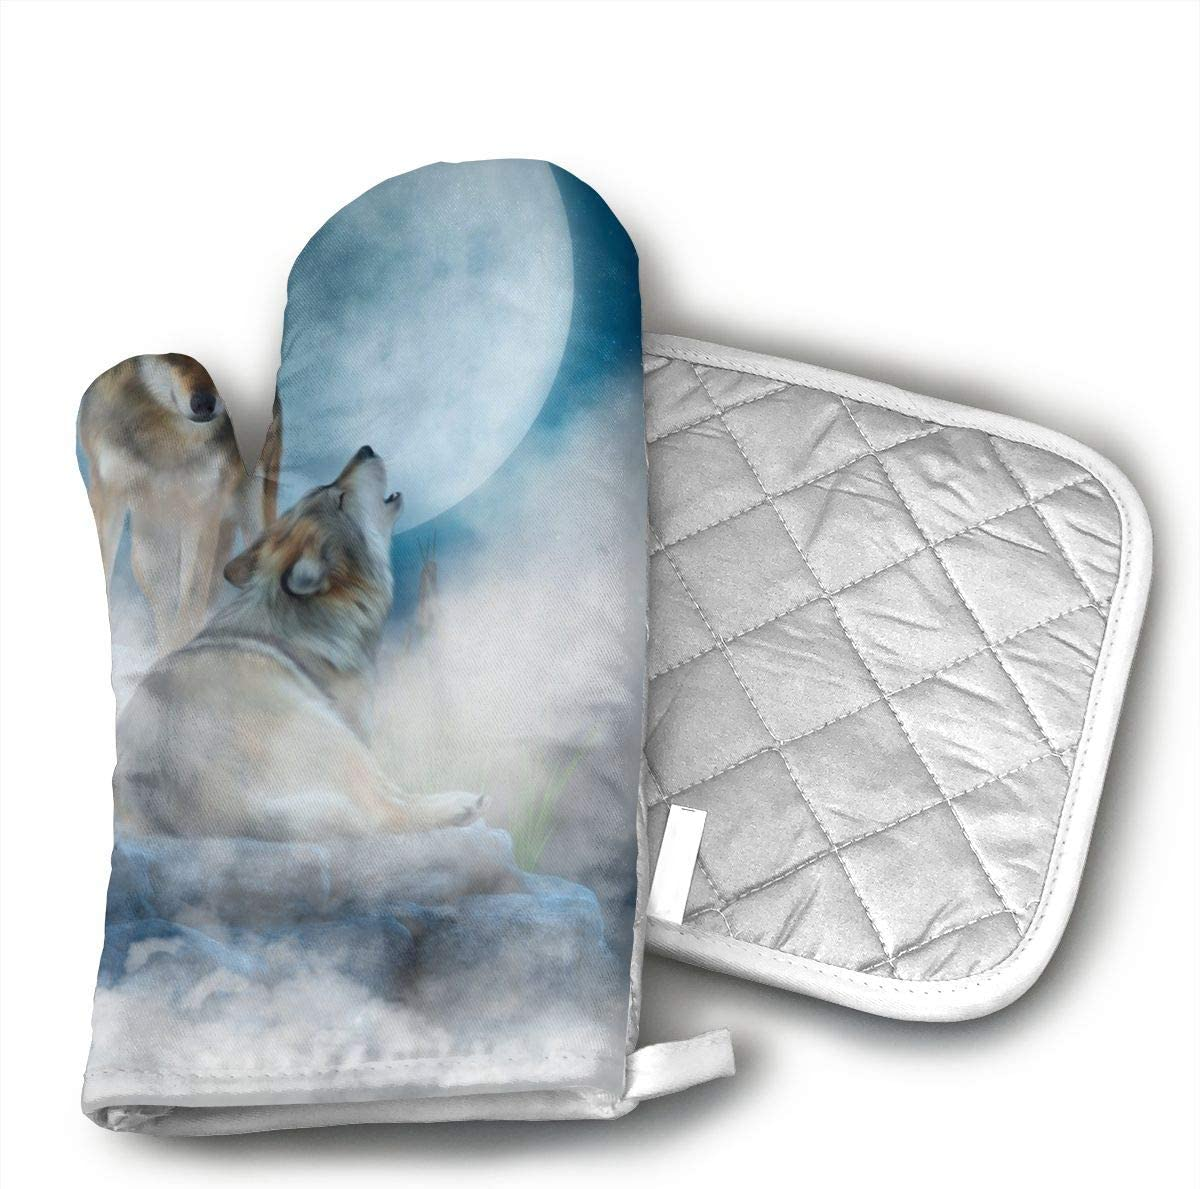 Ubnz17X Wolves in The Mist Oven Mitts and Pot Holders for Kitchen Set with Cotton Non-Slip Grip,Heat Resistant